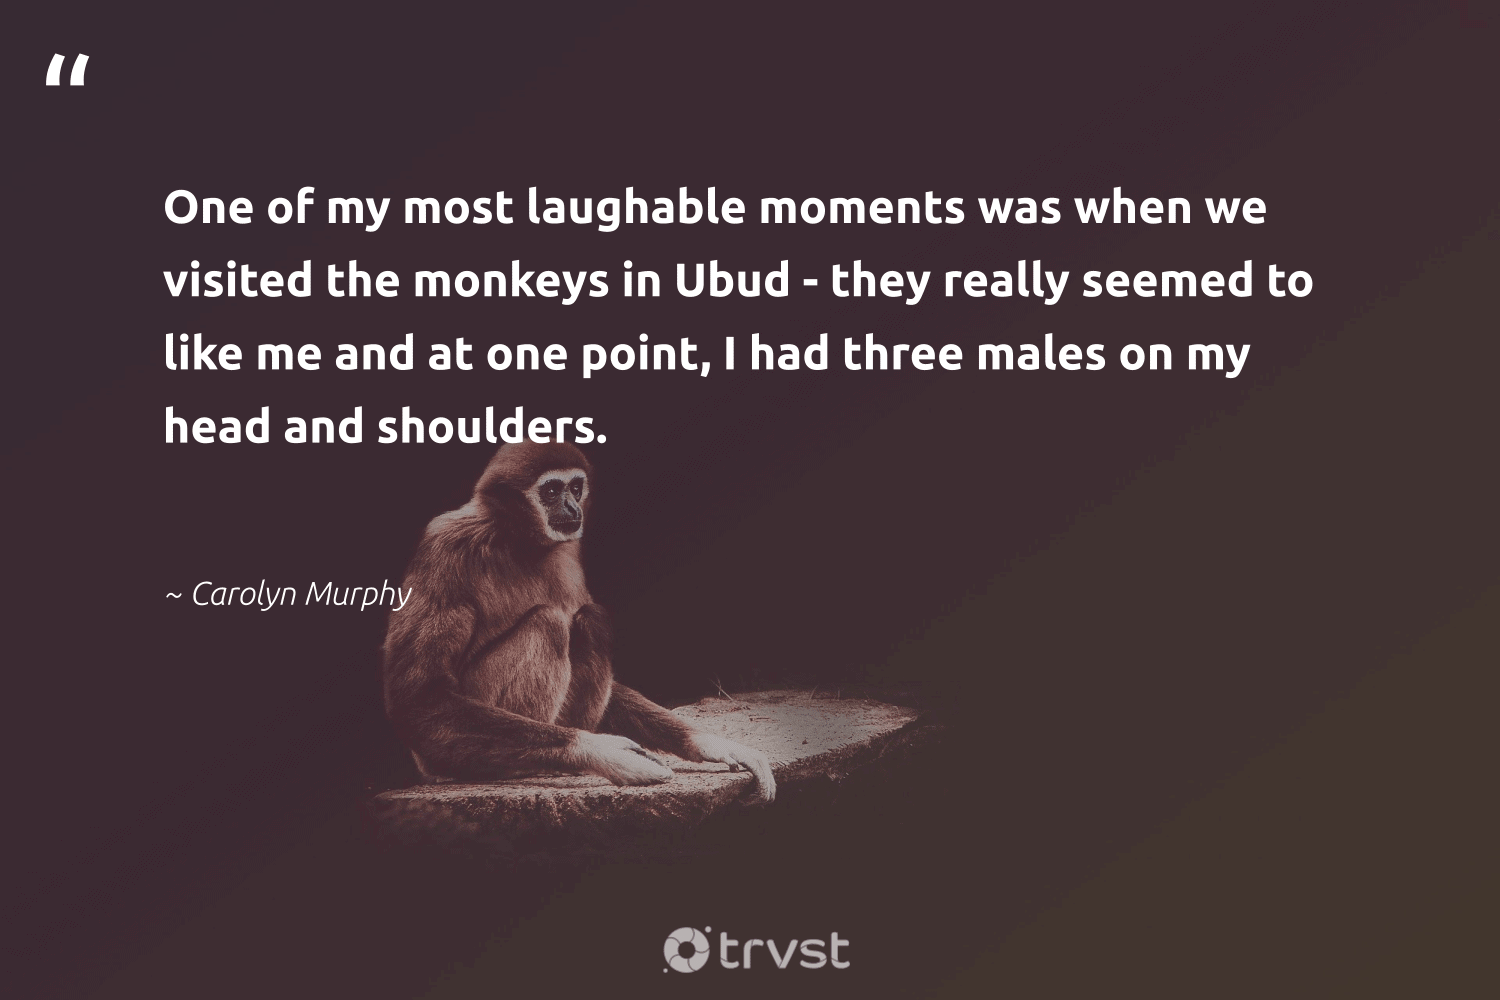 """""""One of my most laughable moments was when we visited the monkeys in Ubud - they really seemed to like me and at one point, I had three males on my head and shoulders.""""  - Carolyn Murphy #trvst #quotes #monkeys #biodiversity #dotherightthing #amazingworld #thinkgreen #protectnature #dosomething #splendidanimals #bethechange #wild"""